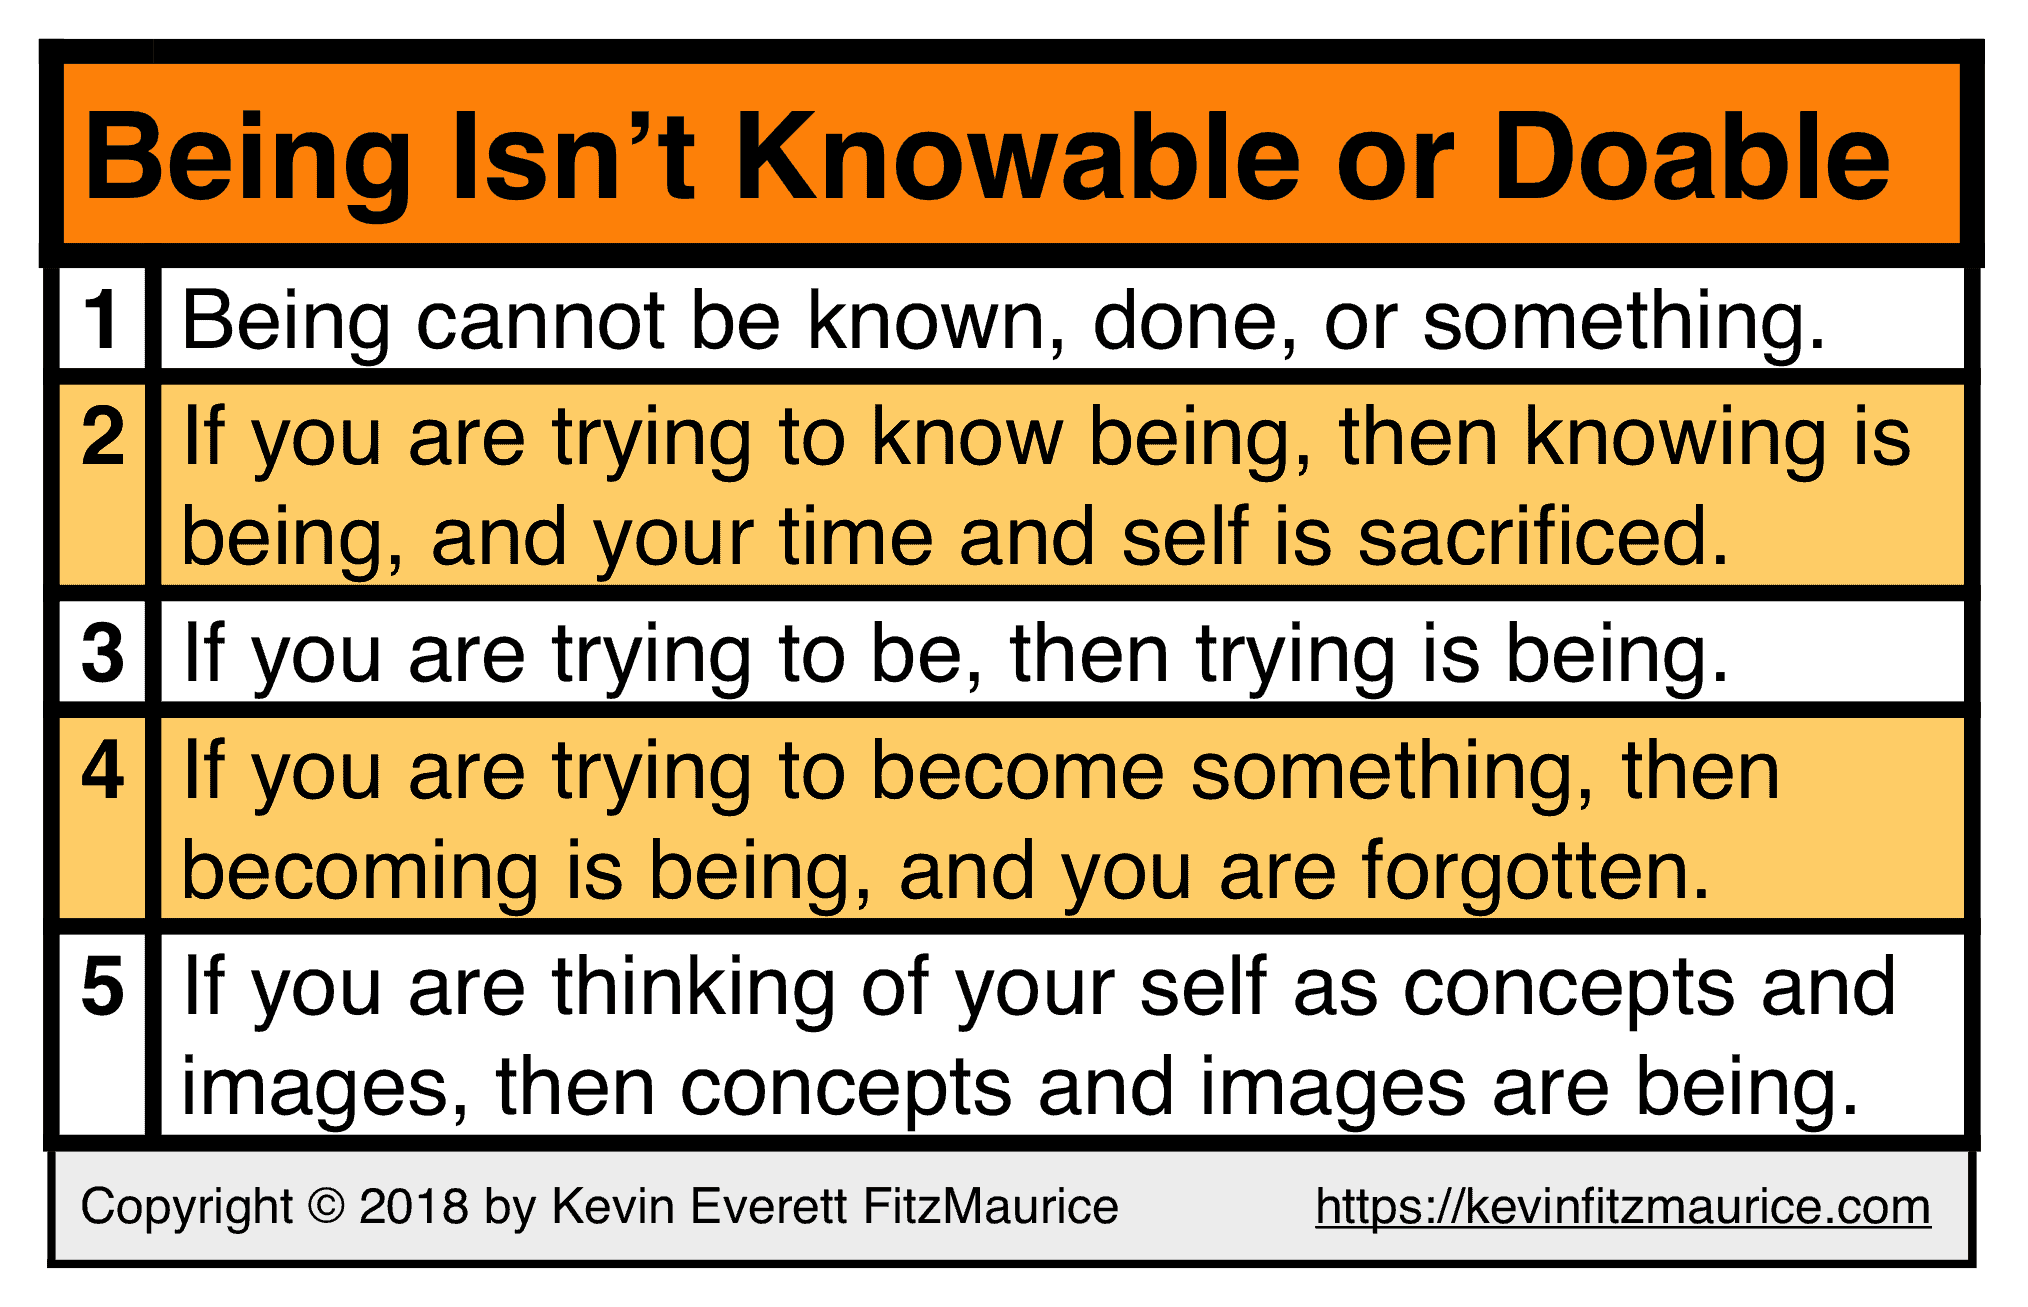 Being Isn't Knowable or Doable